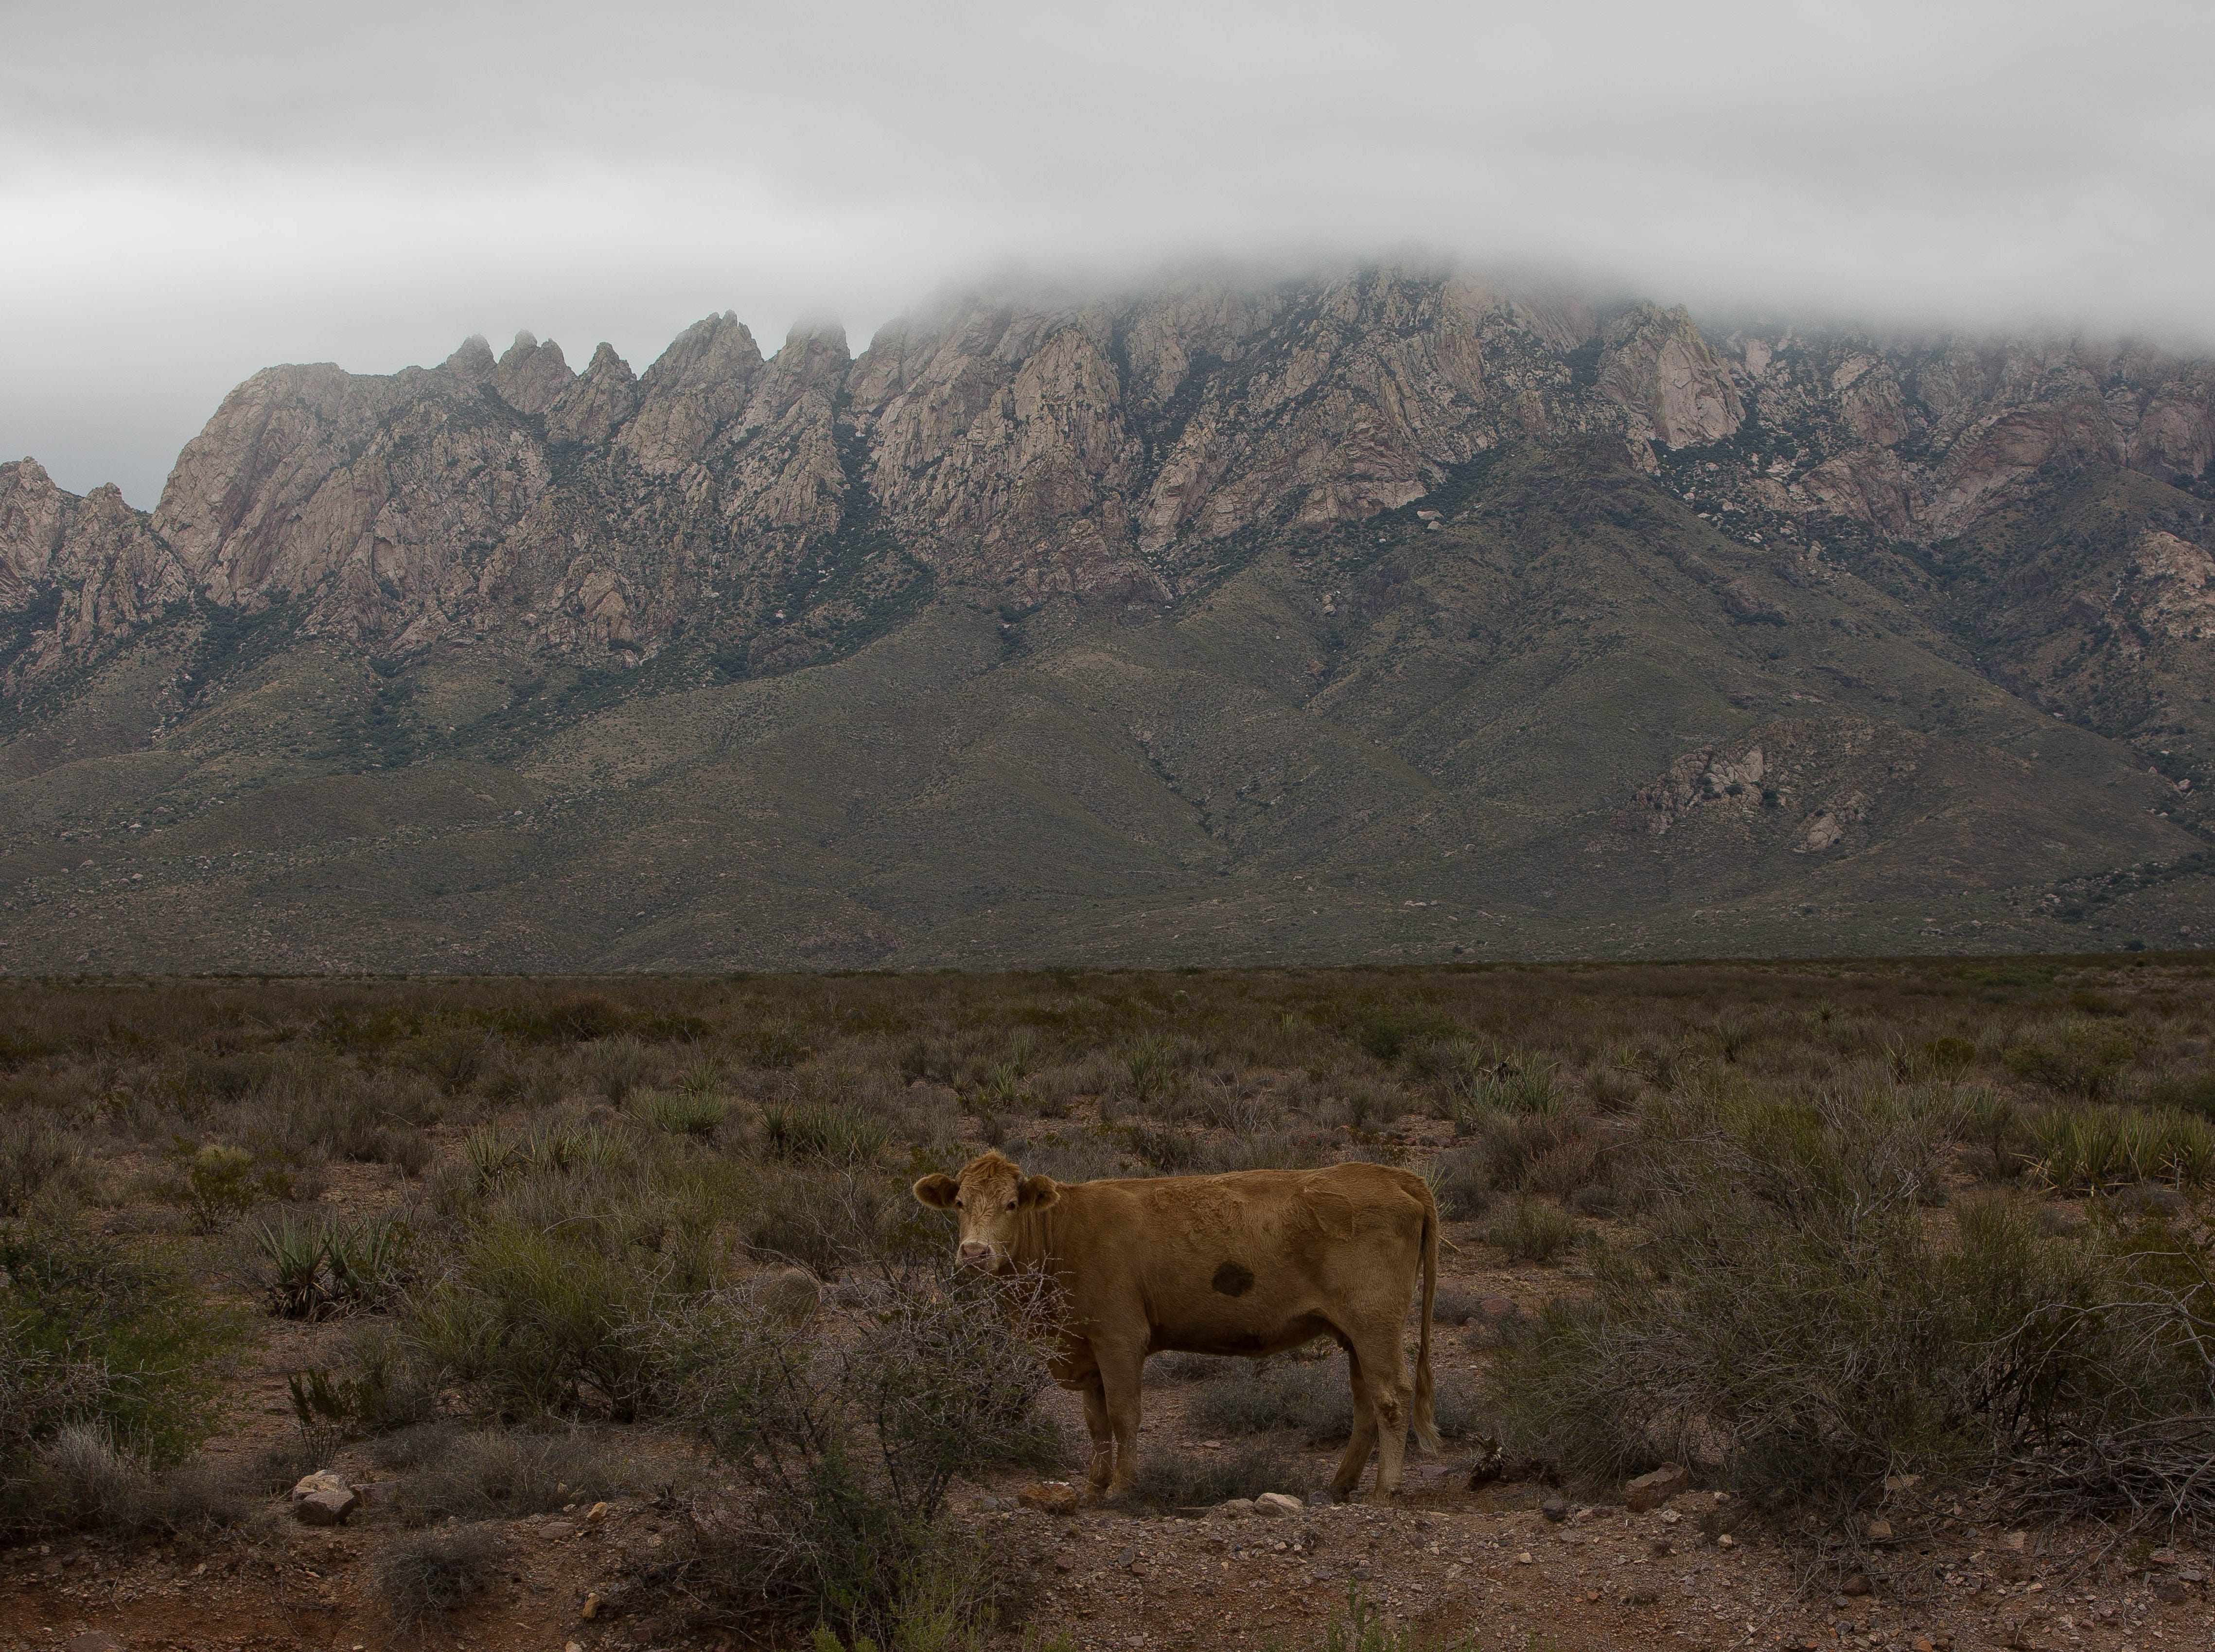 A cow wanders through the Organ Mountains- Desert Peaks National Monument , Tuesday October 16, 2018, near the Baylor Canyon Road.